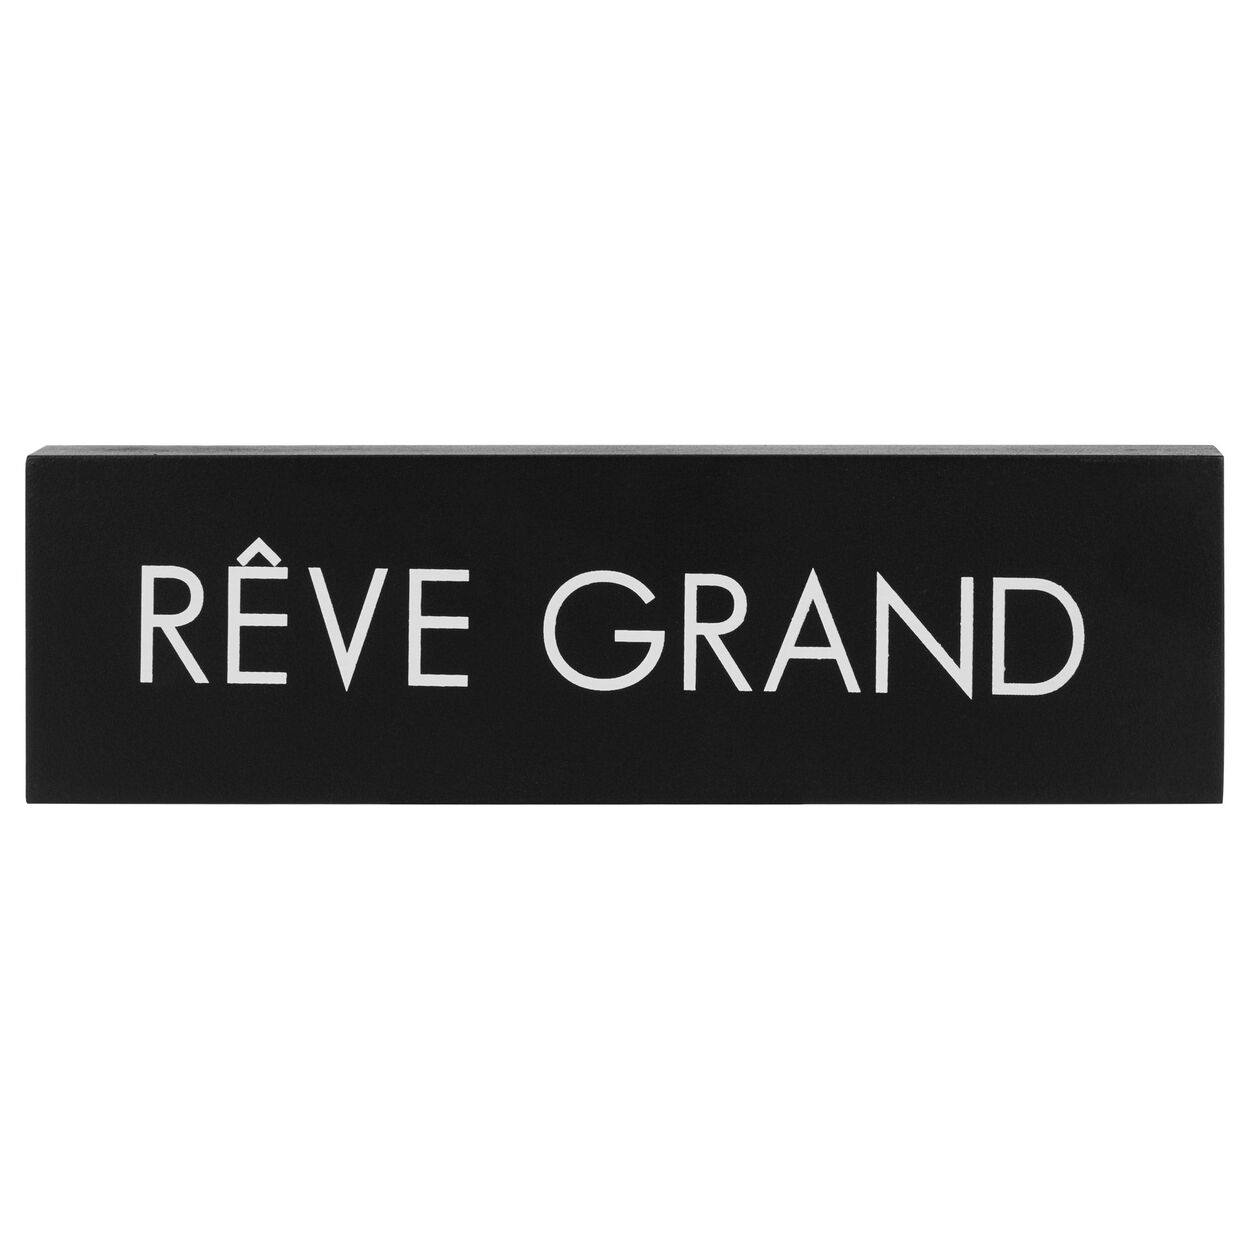 Decorative Block Rêve grand